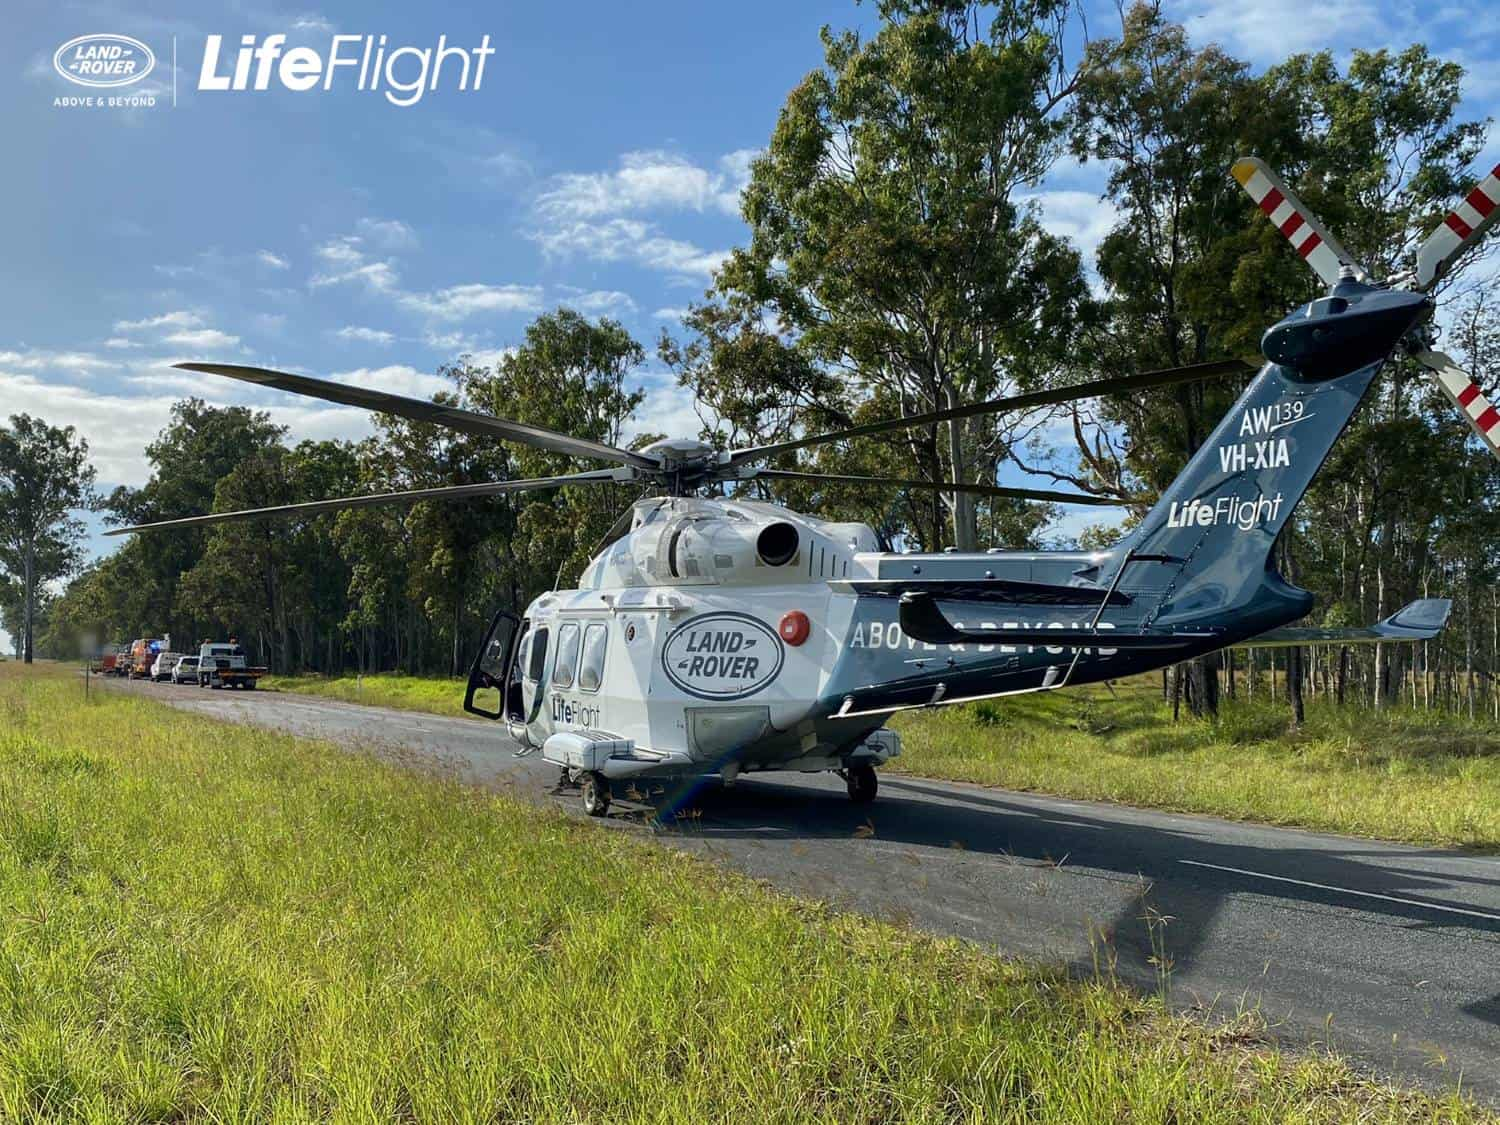 Seriously injured teenager airlifted after crash